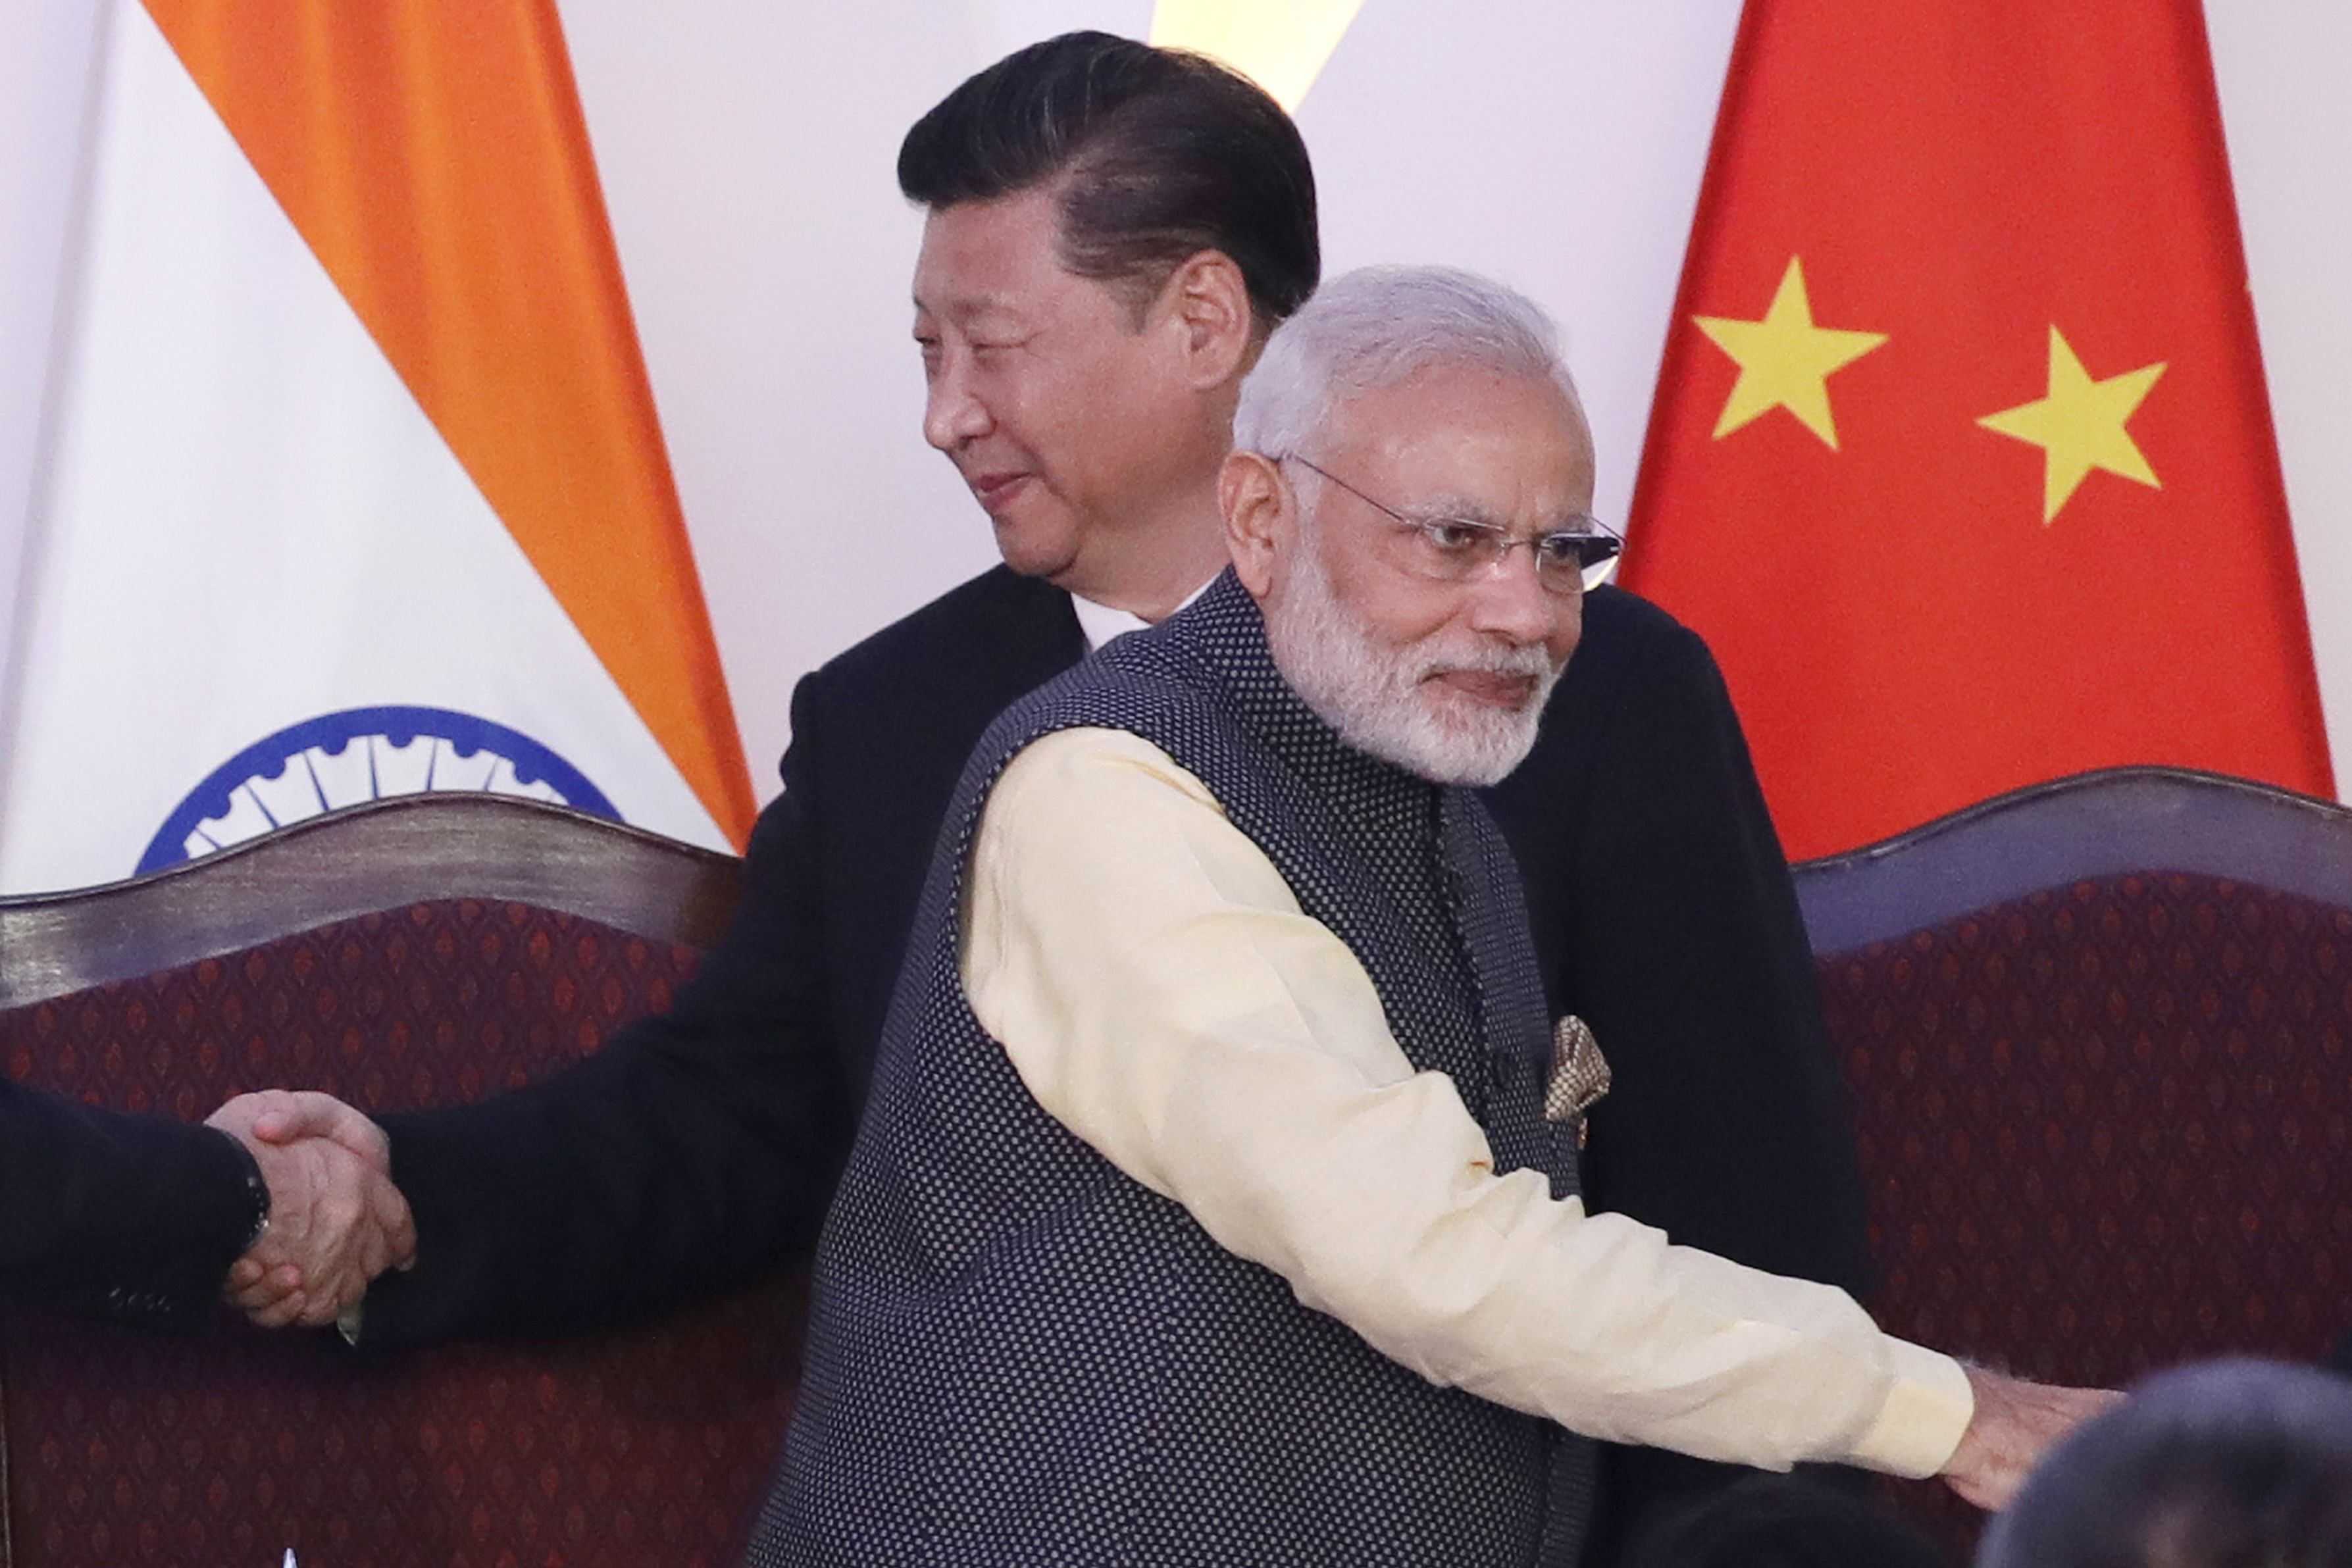 Westlake Legal Group AP20168305188126 China releases 10 Indian soldiers days after deadly border clash Peter Aitken fox-news/world/world-regions/india fox-news/world/world-regions/china fox-news/world/world-regions/asia fox-news/world/conflicts fox-news/world fox news fnc/world fnc dbb6c078-2362-51cb-b222-7c619c08f1f2 article